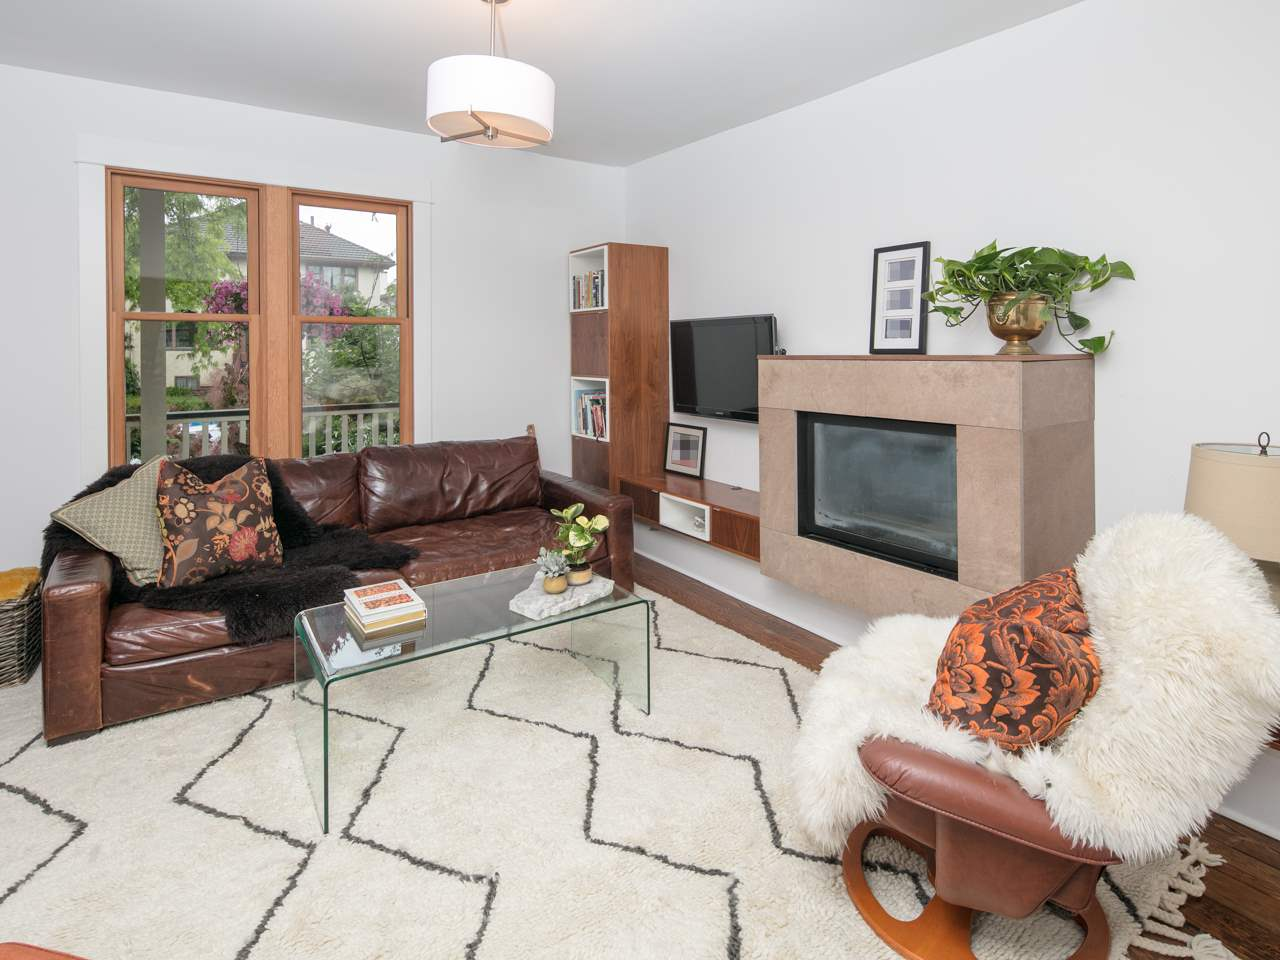 Photo 2: 880 KEEFER Street in Vancouver: Mount Pleasant VE House for sale (Vancouver East)  : MLS® # R2176389